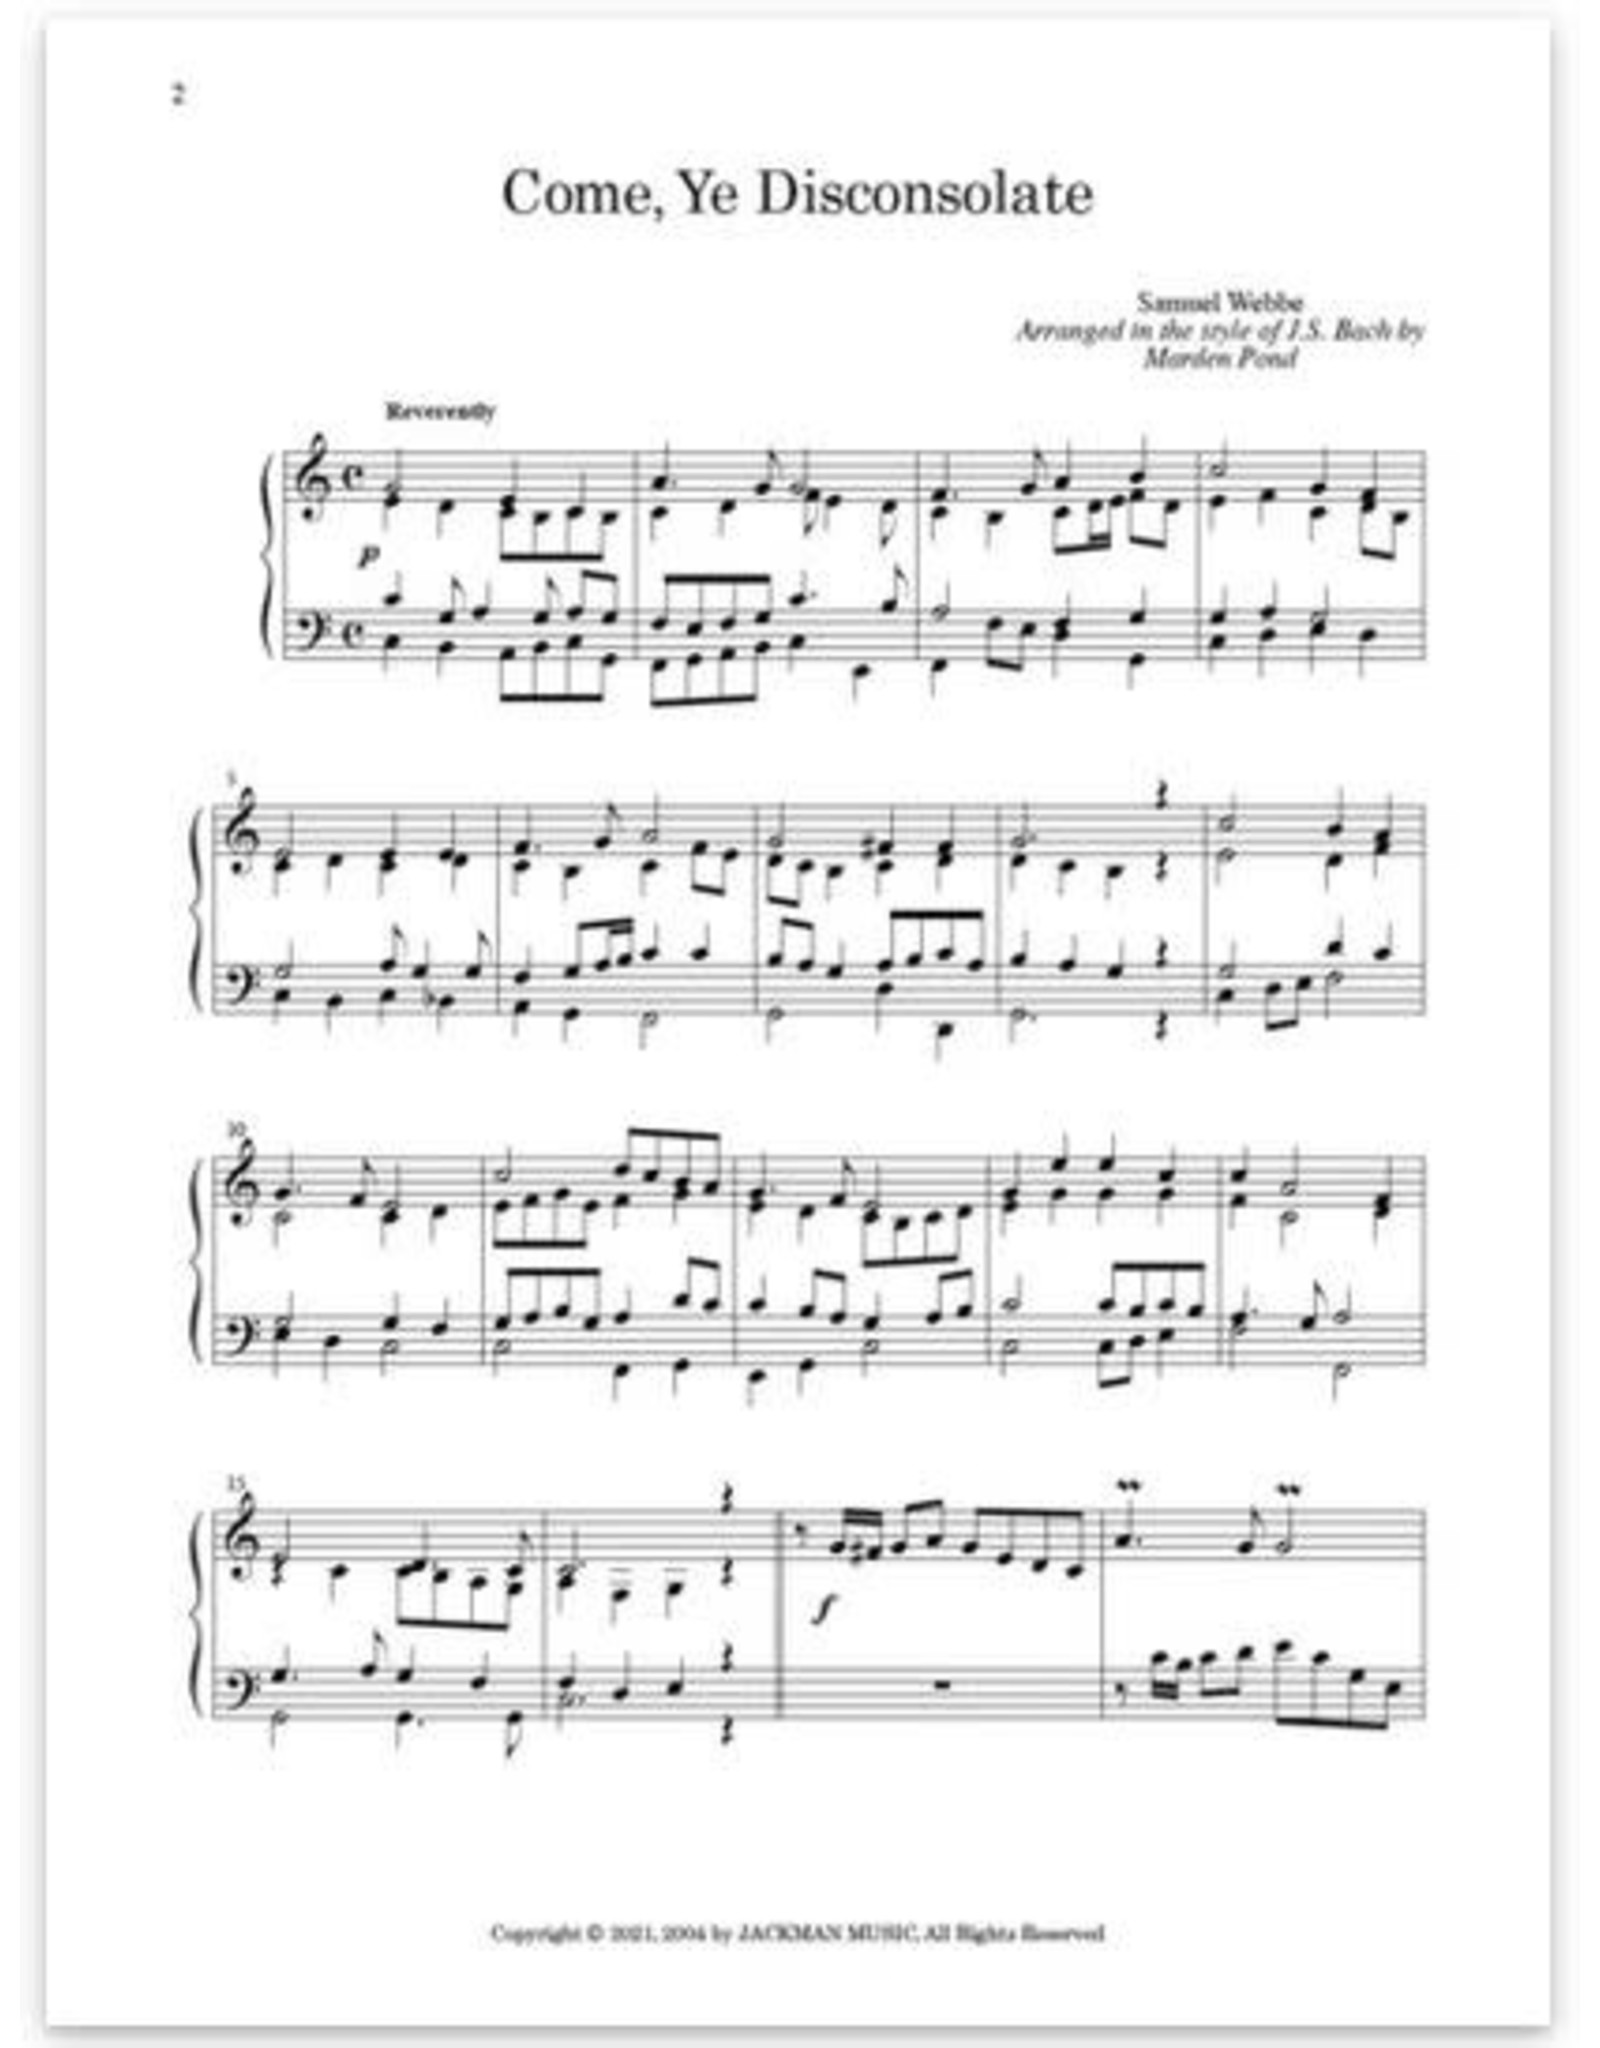 Jackman Music Master's Touch Vol. 2 arr. by Marden Pond